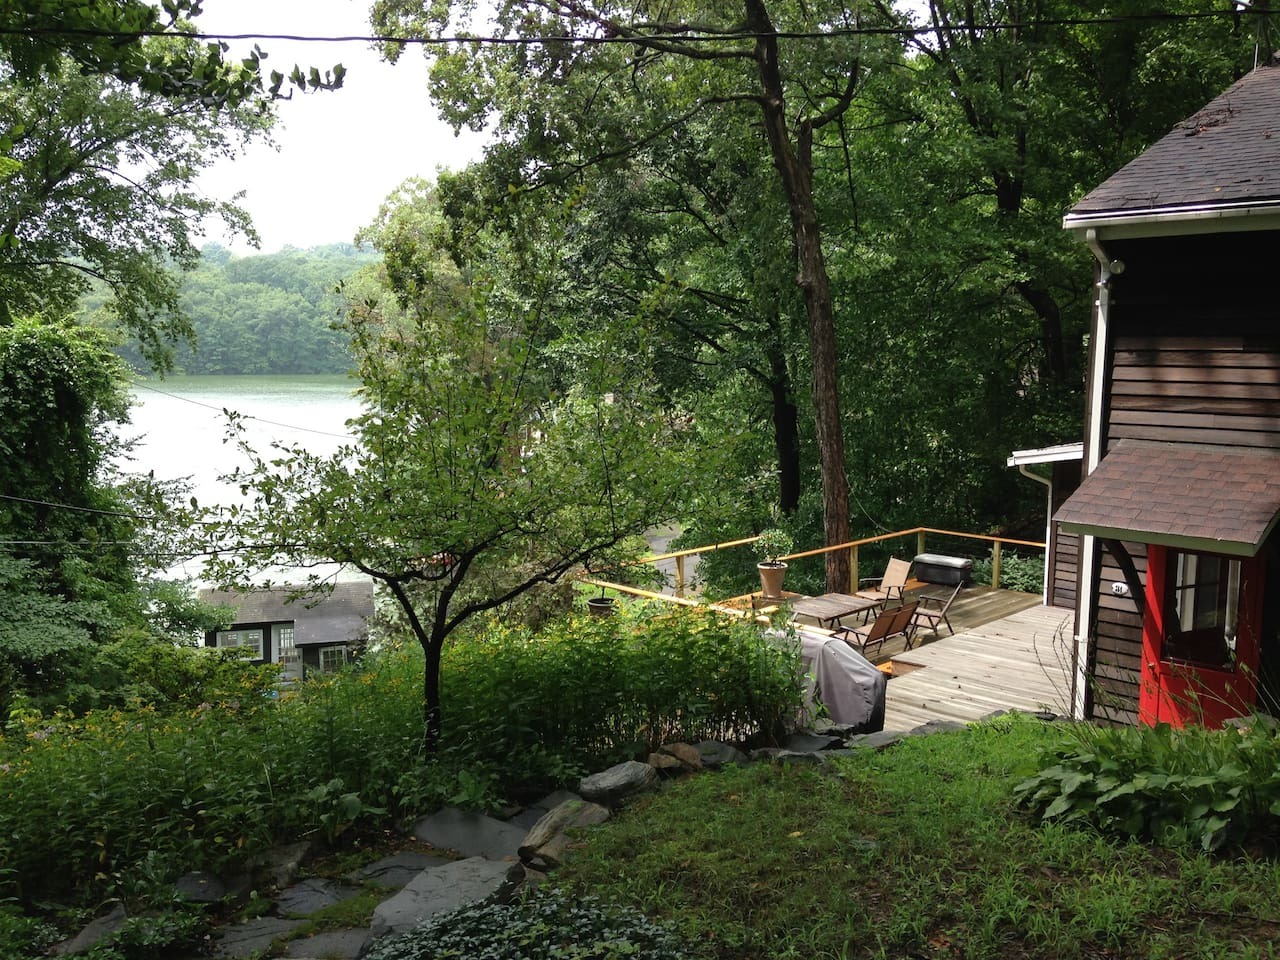 View from driveway, down to house & deck, then boathouse/dock